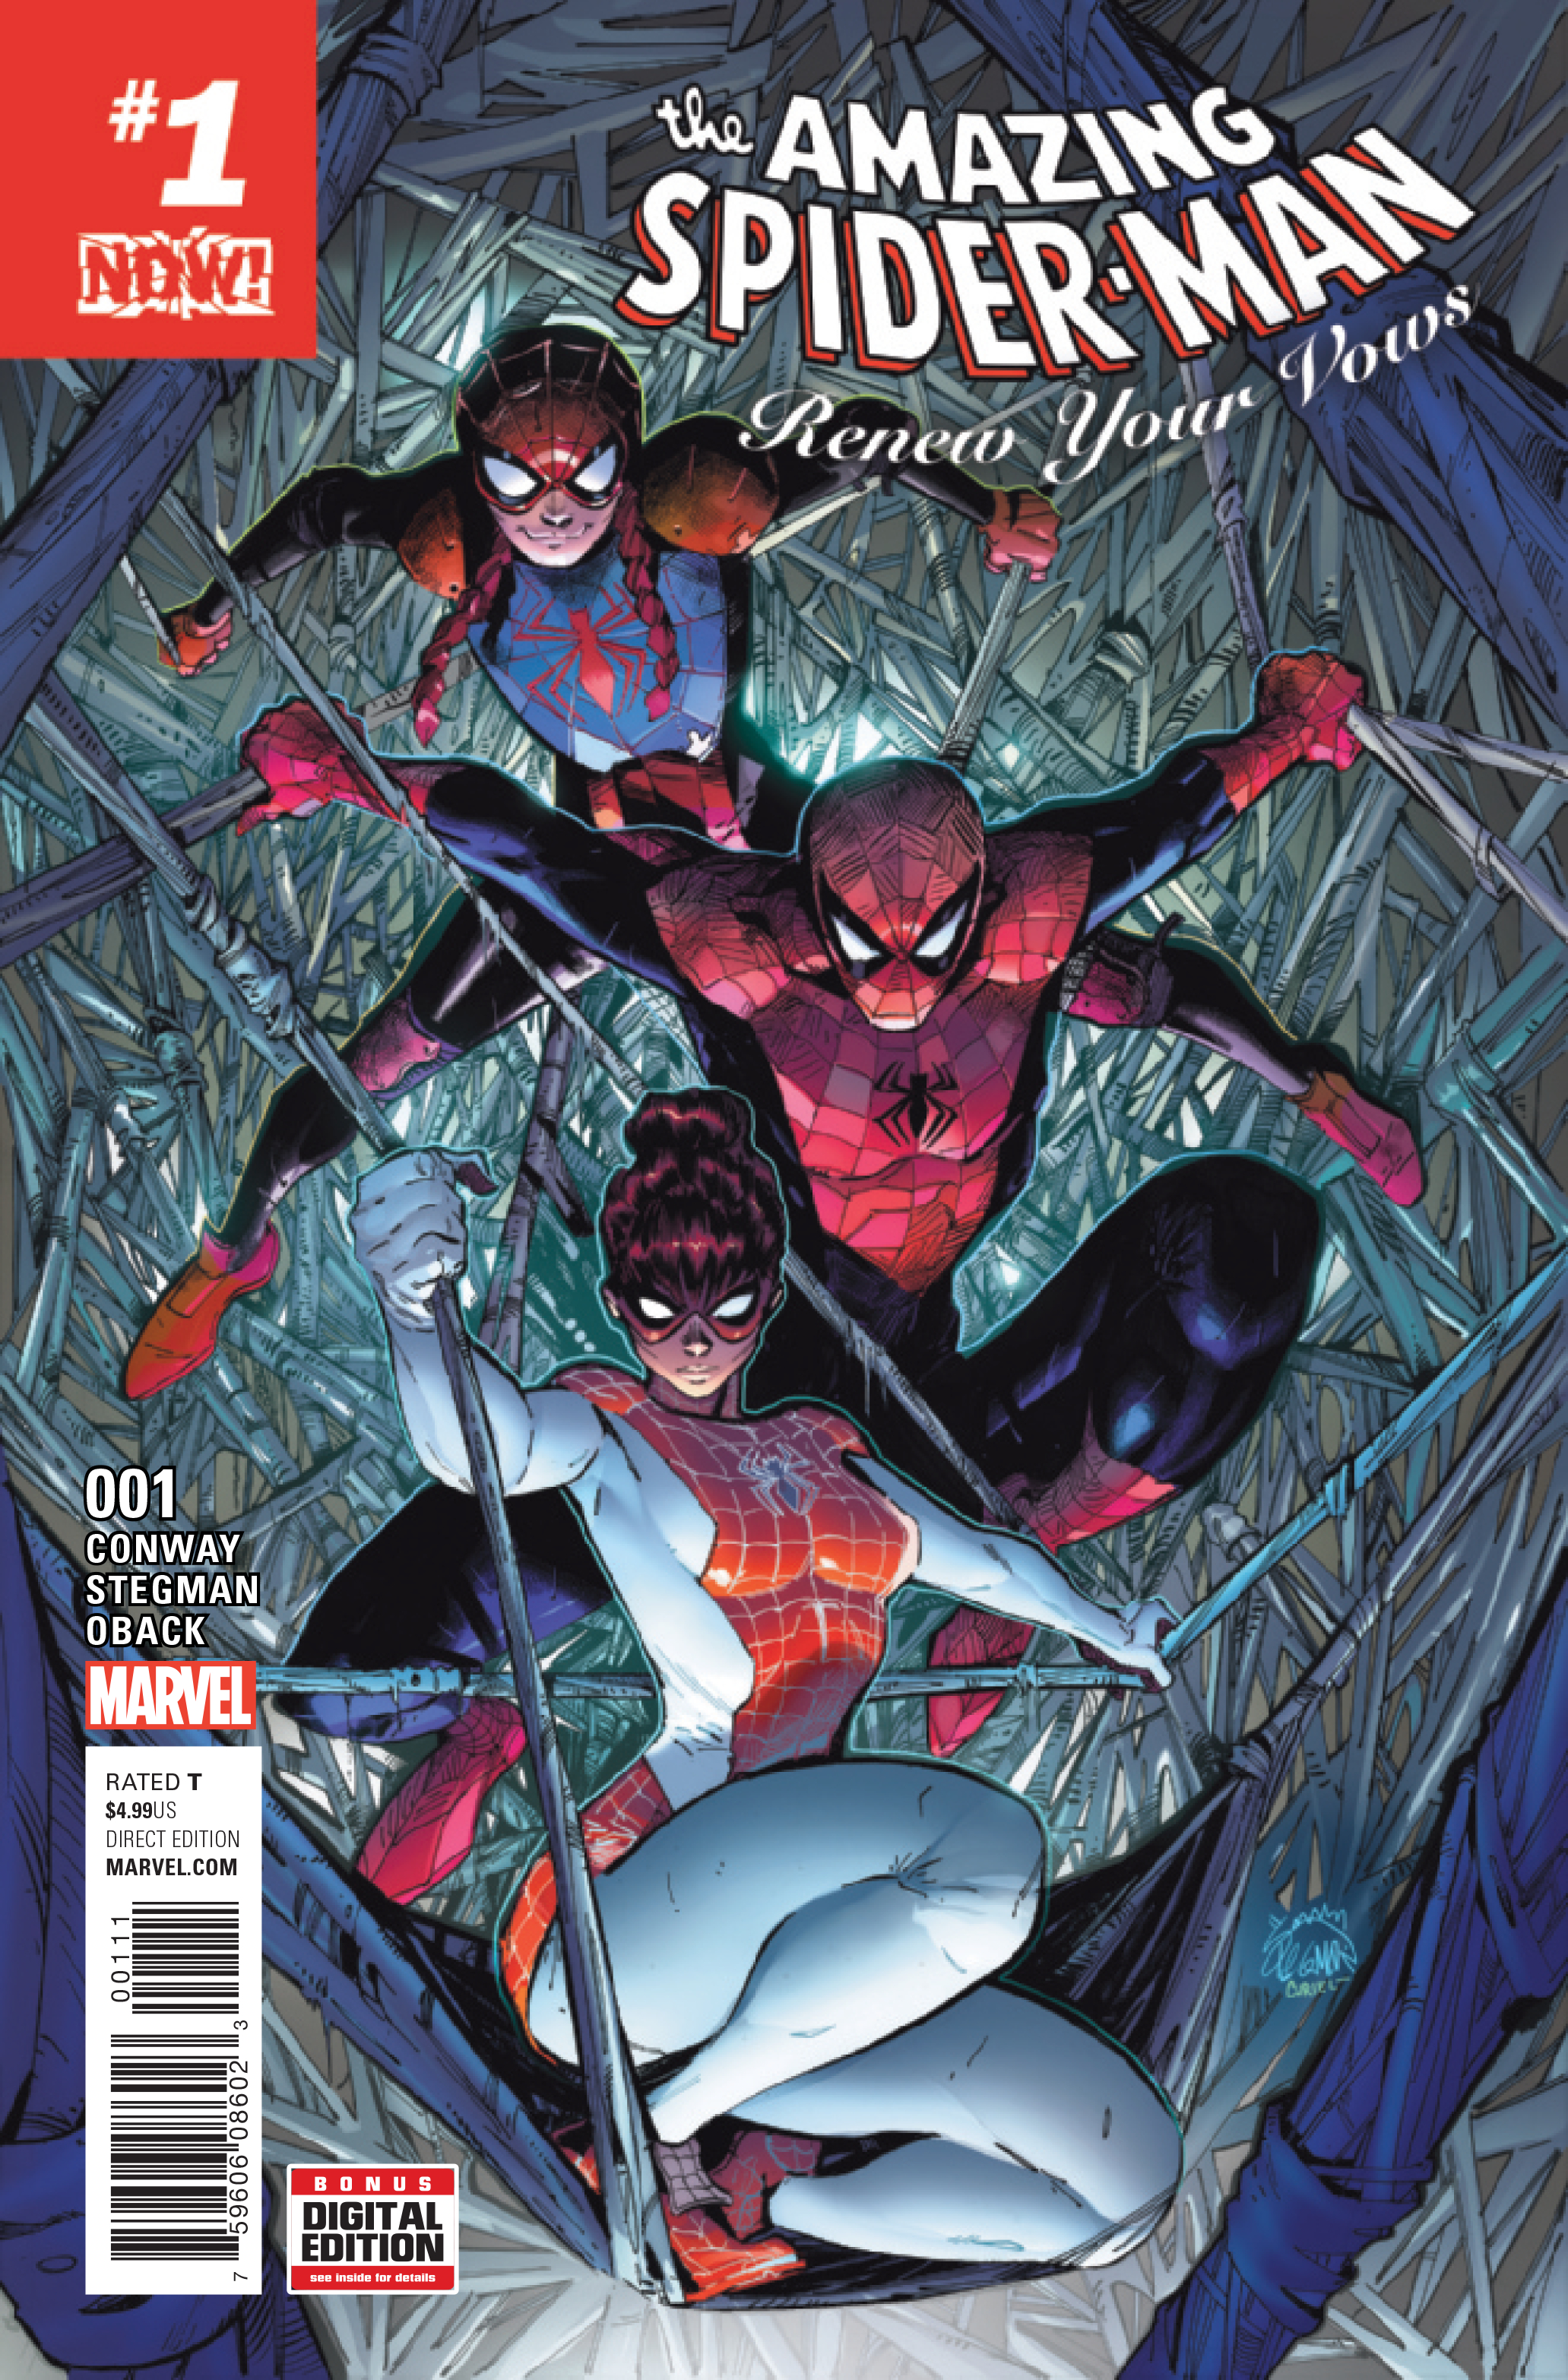 AMAZING SPIDER-MAN RENEW YOUR VOWS #1 NOW